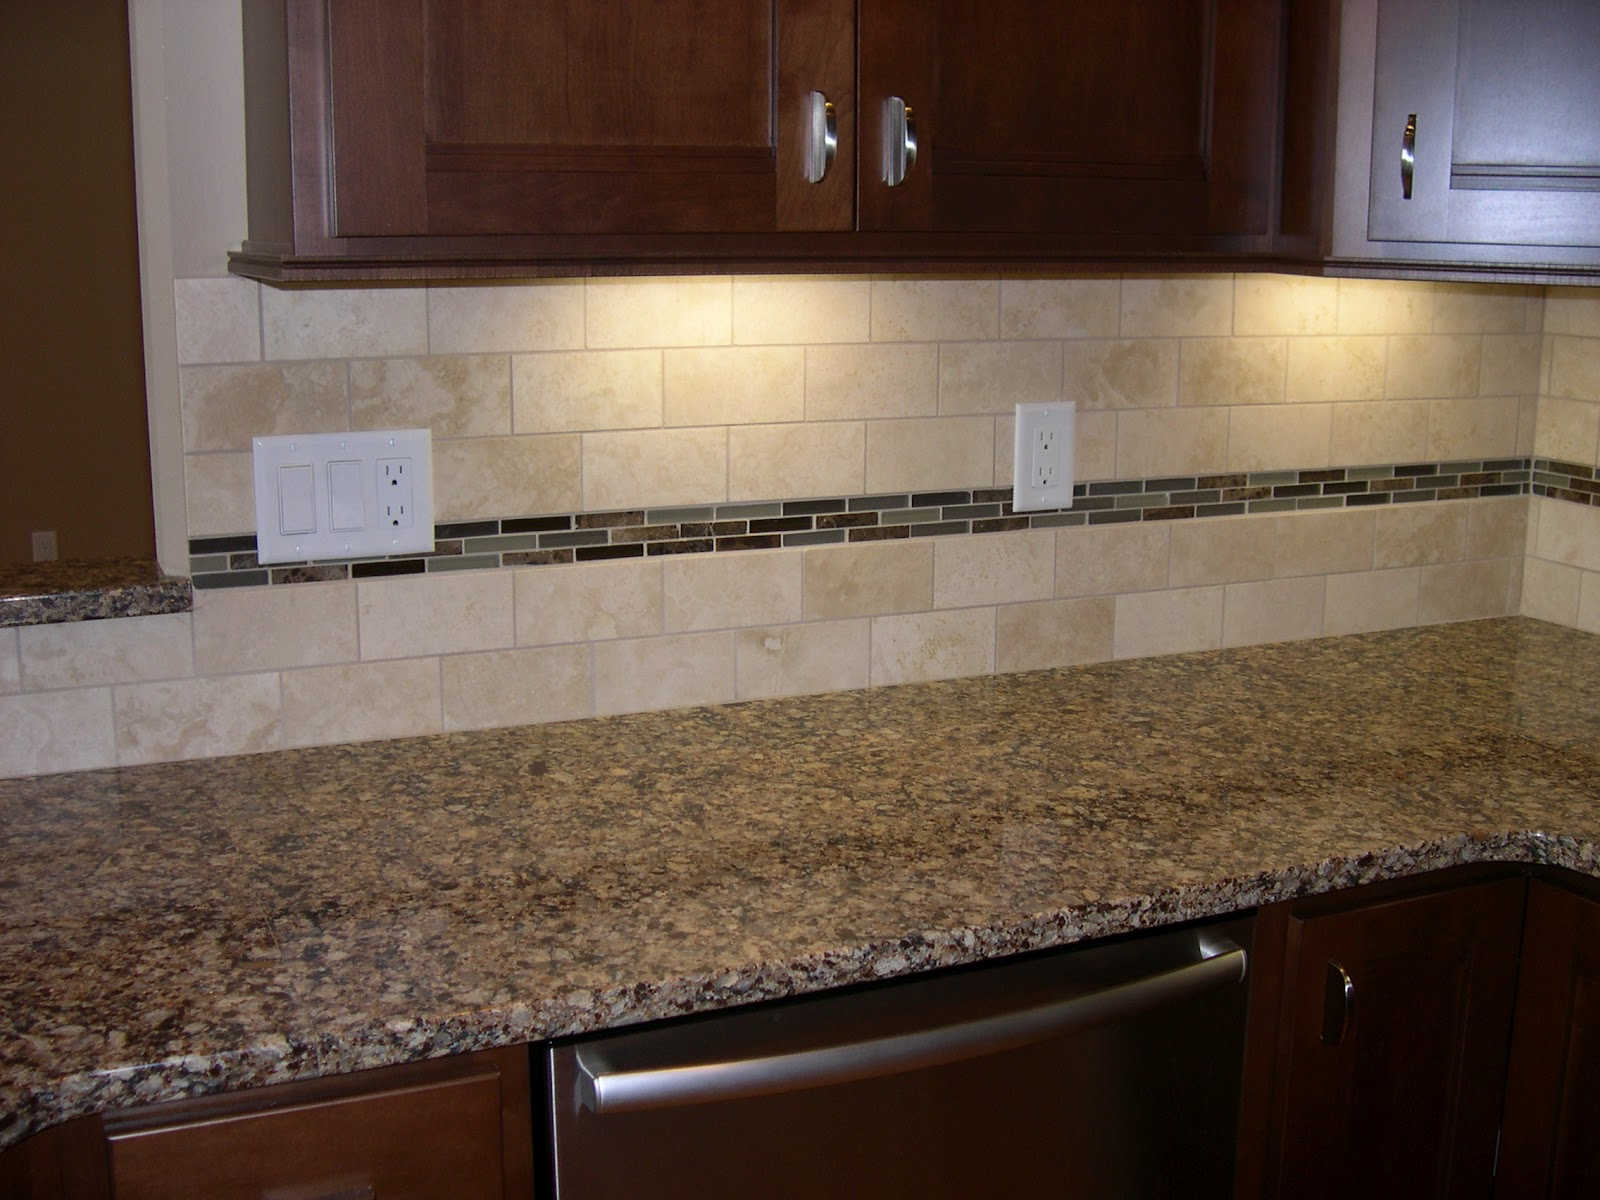 Jill tentinger june 2012 - Backsplash designs travertine ...